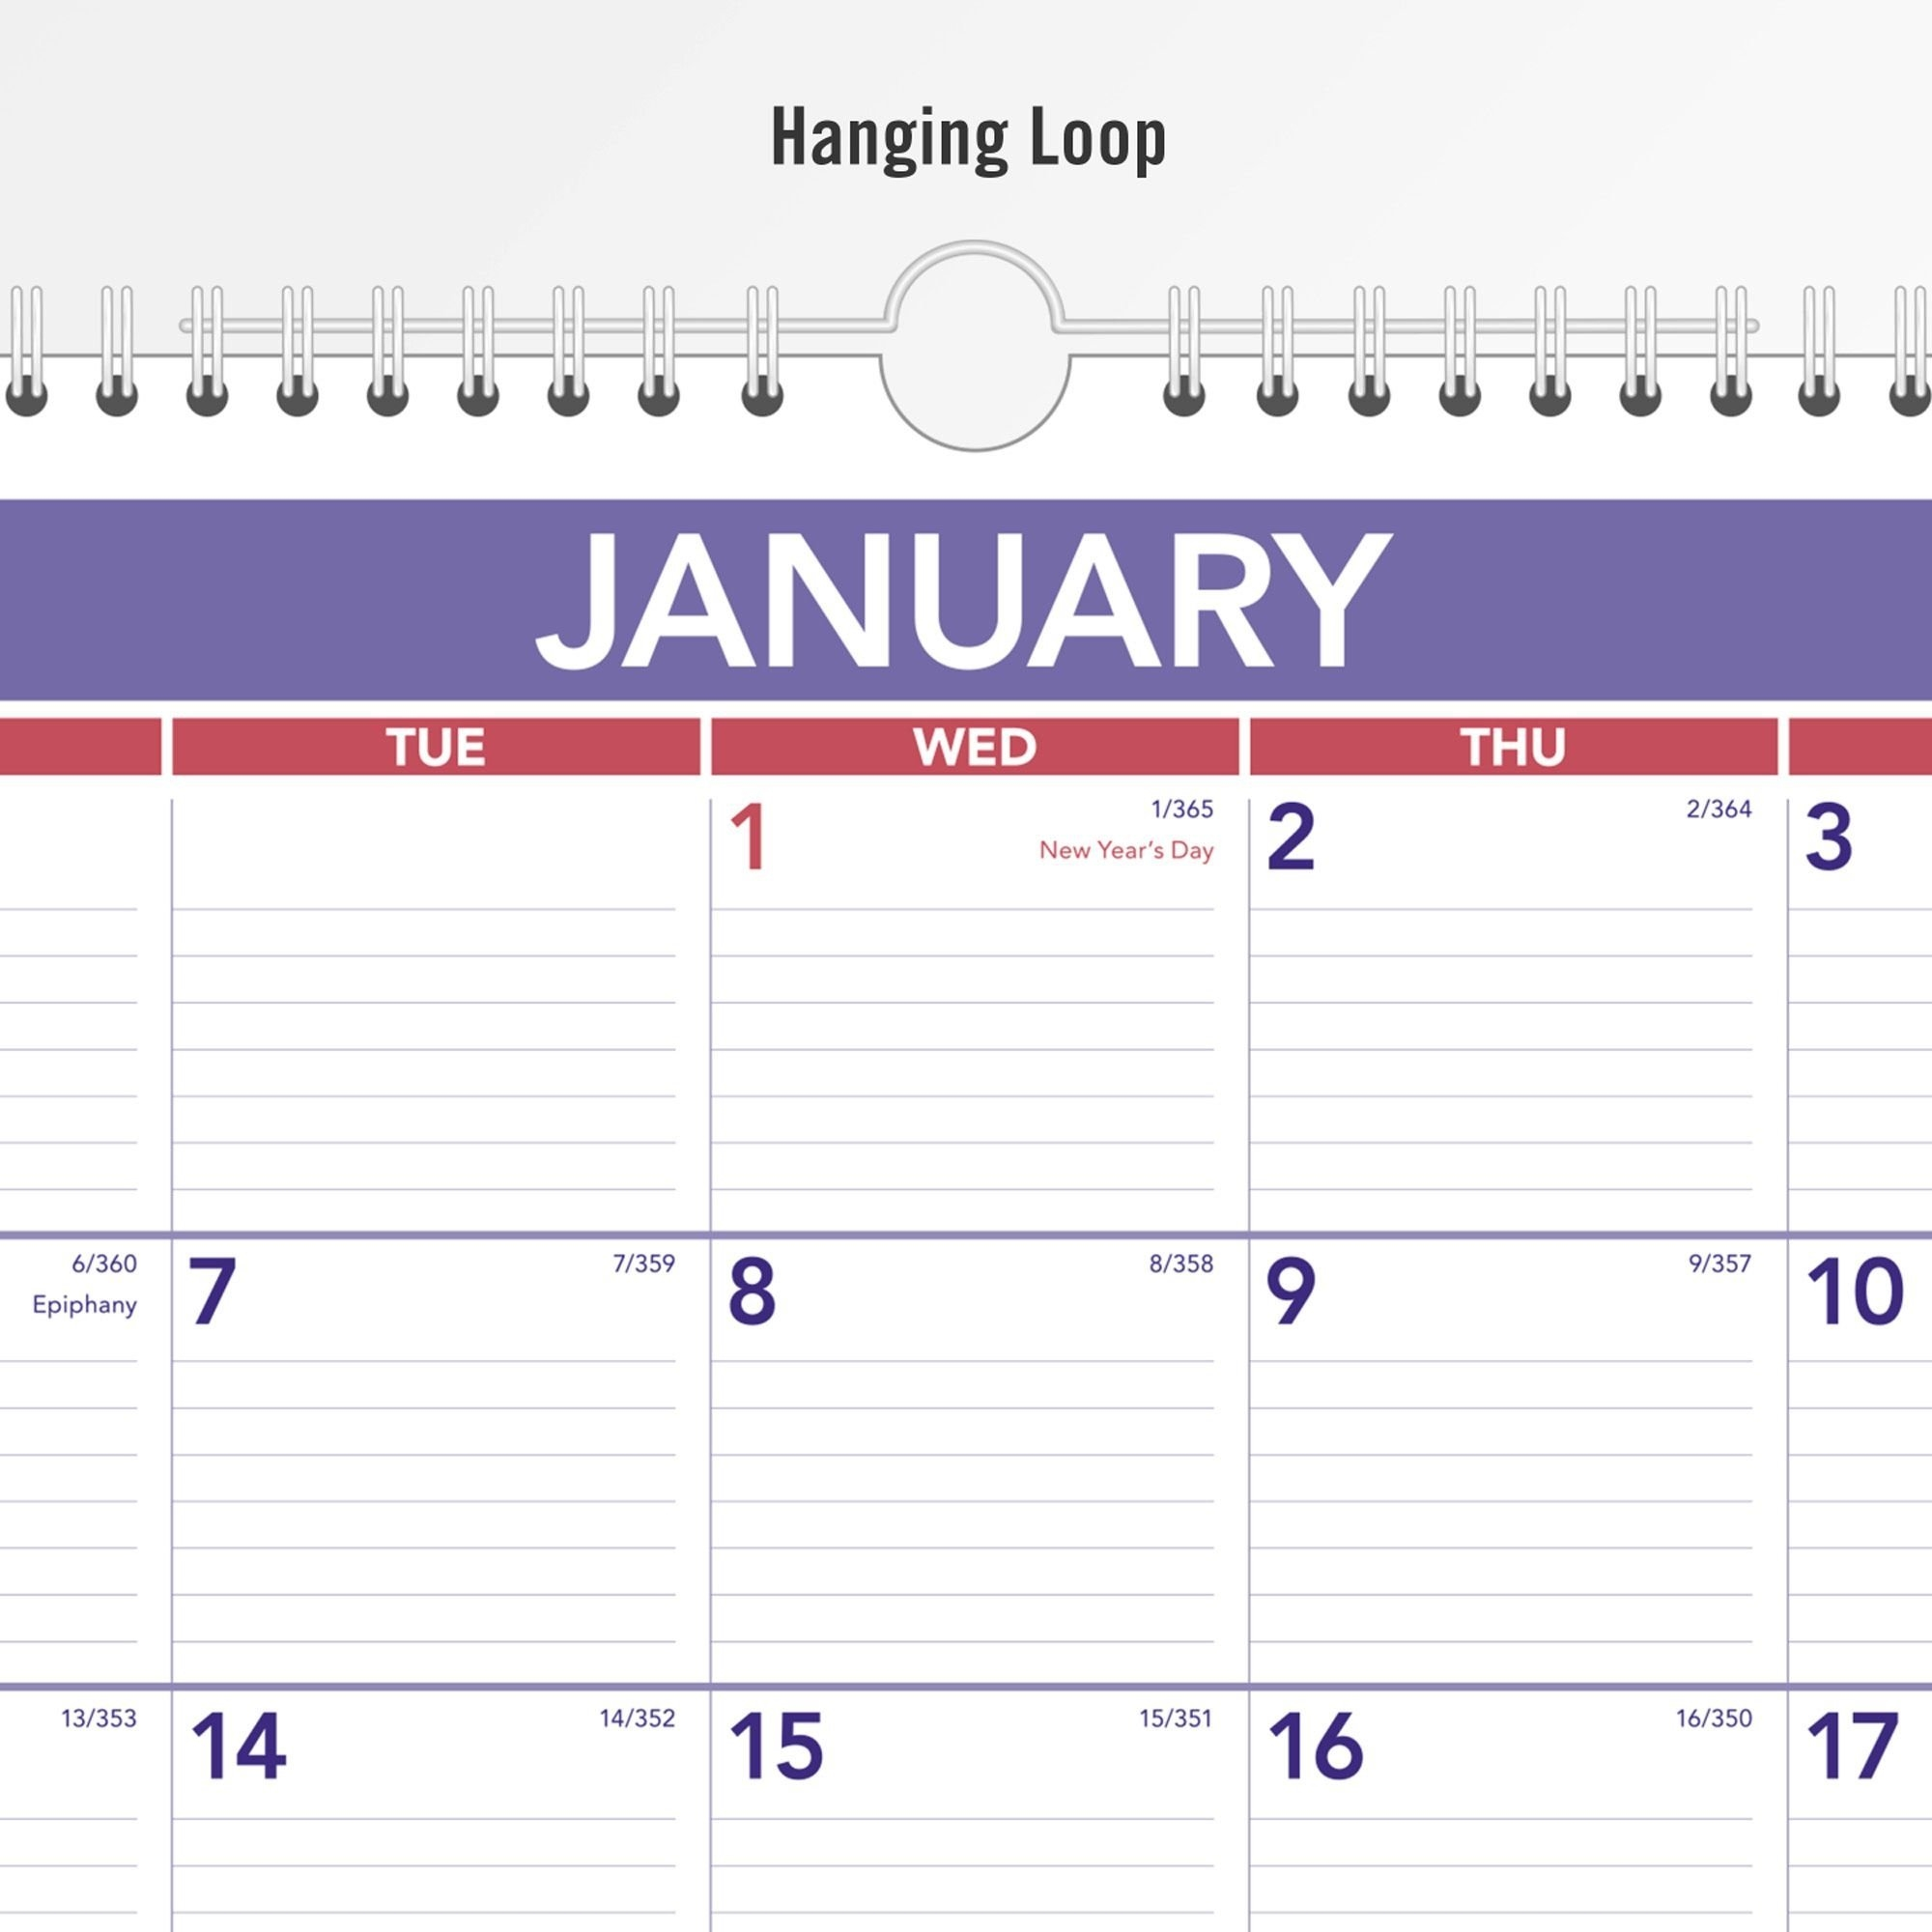 2021 Calendar With Date Boxes And Abbreviated Holidays - Example Calendar Printable within Julian Calendar 2021 Printable Free